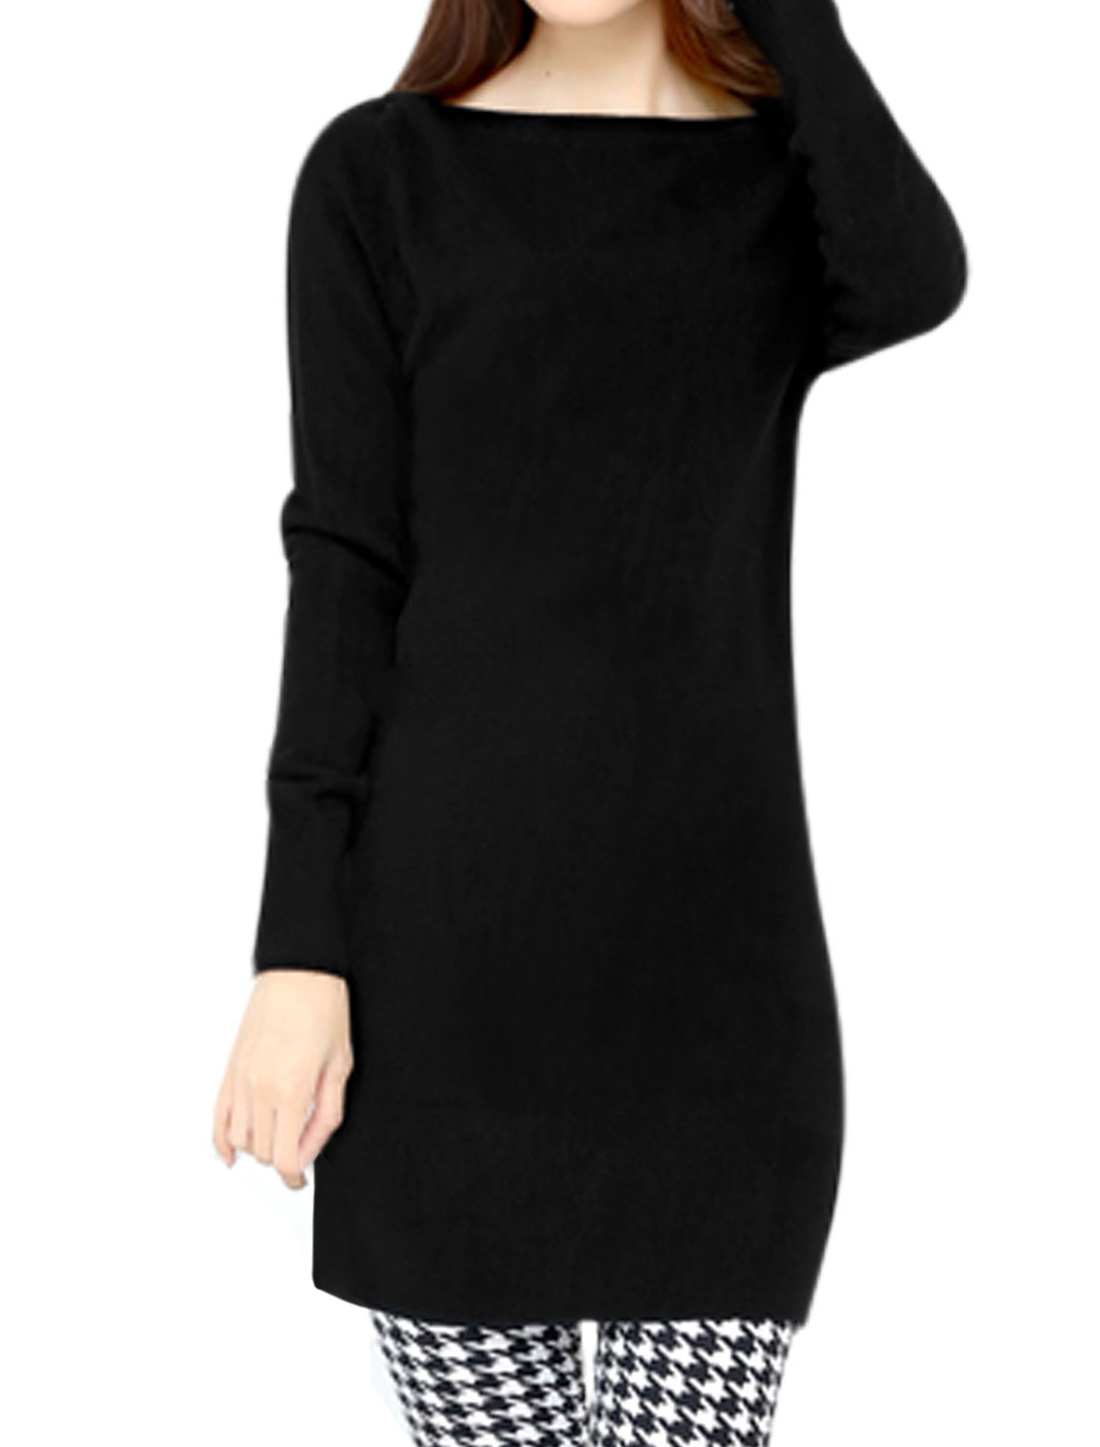 Women Boat Neck Long Sleeves Slim Fit Tunic Knit Top Black S